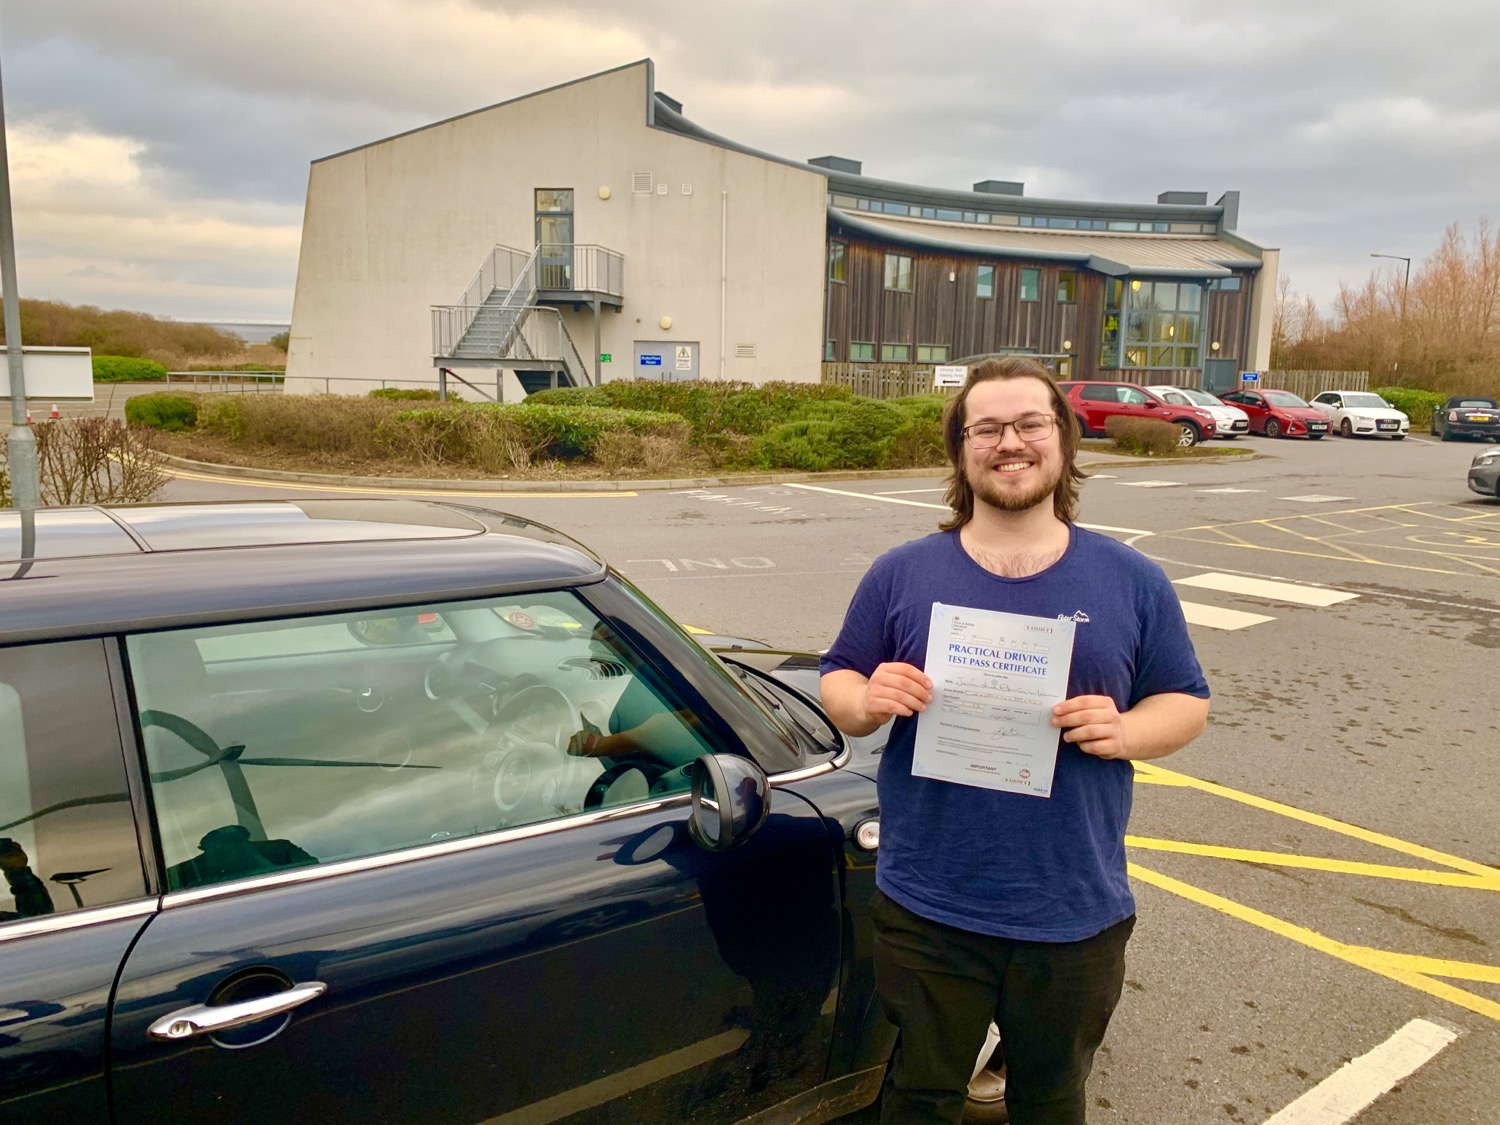 First Driving Test of 2020 - Congratulations Jamie on passing First Time with only 1 driving fault